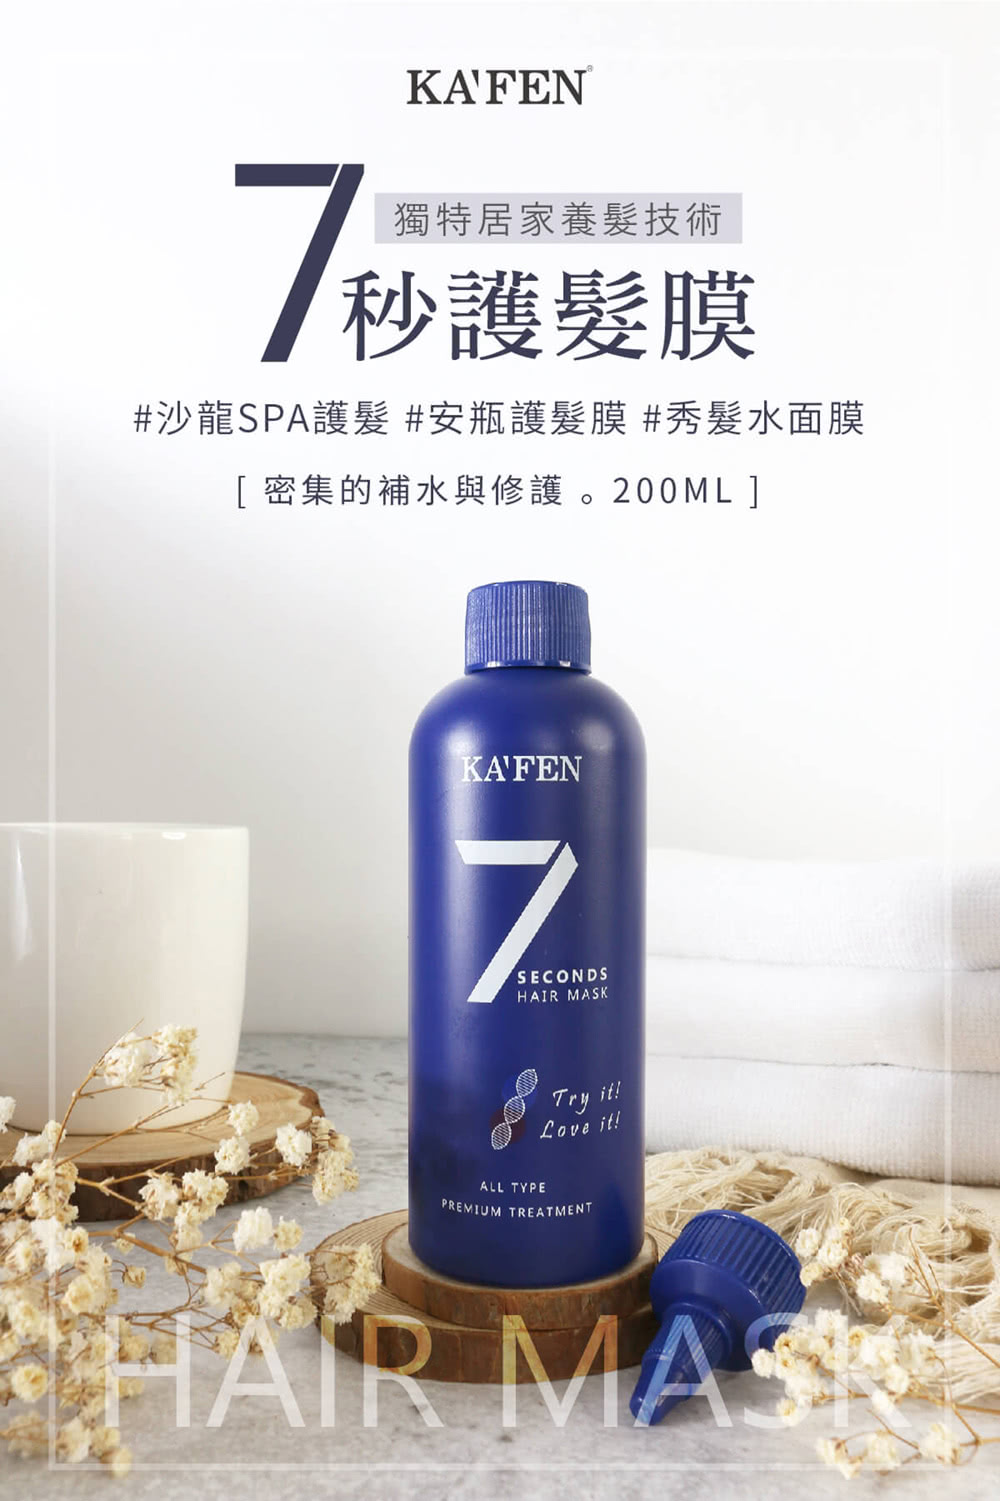 7 Seconds Hair Mask - Intro